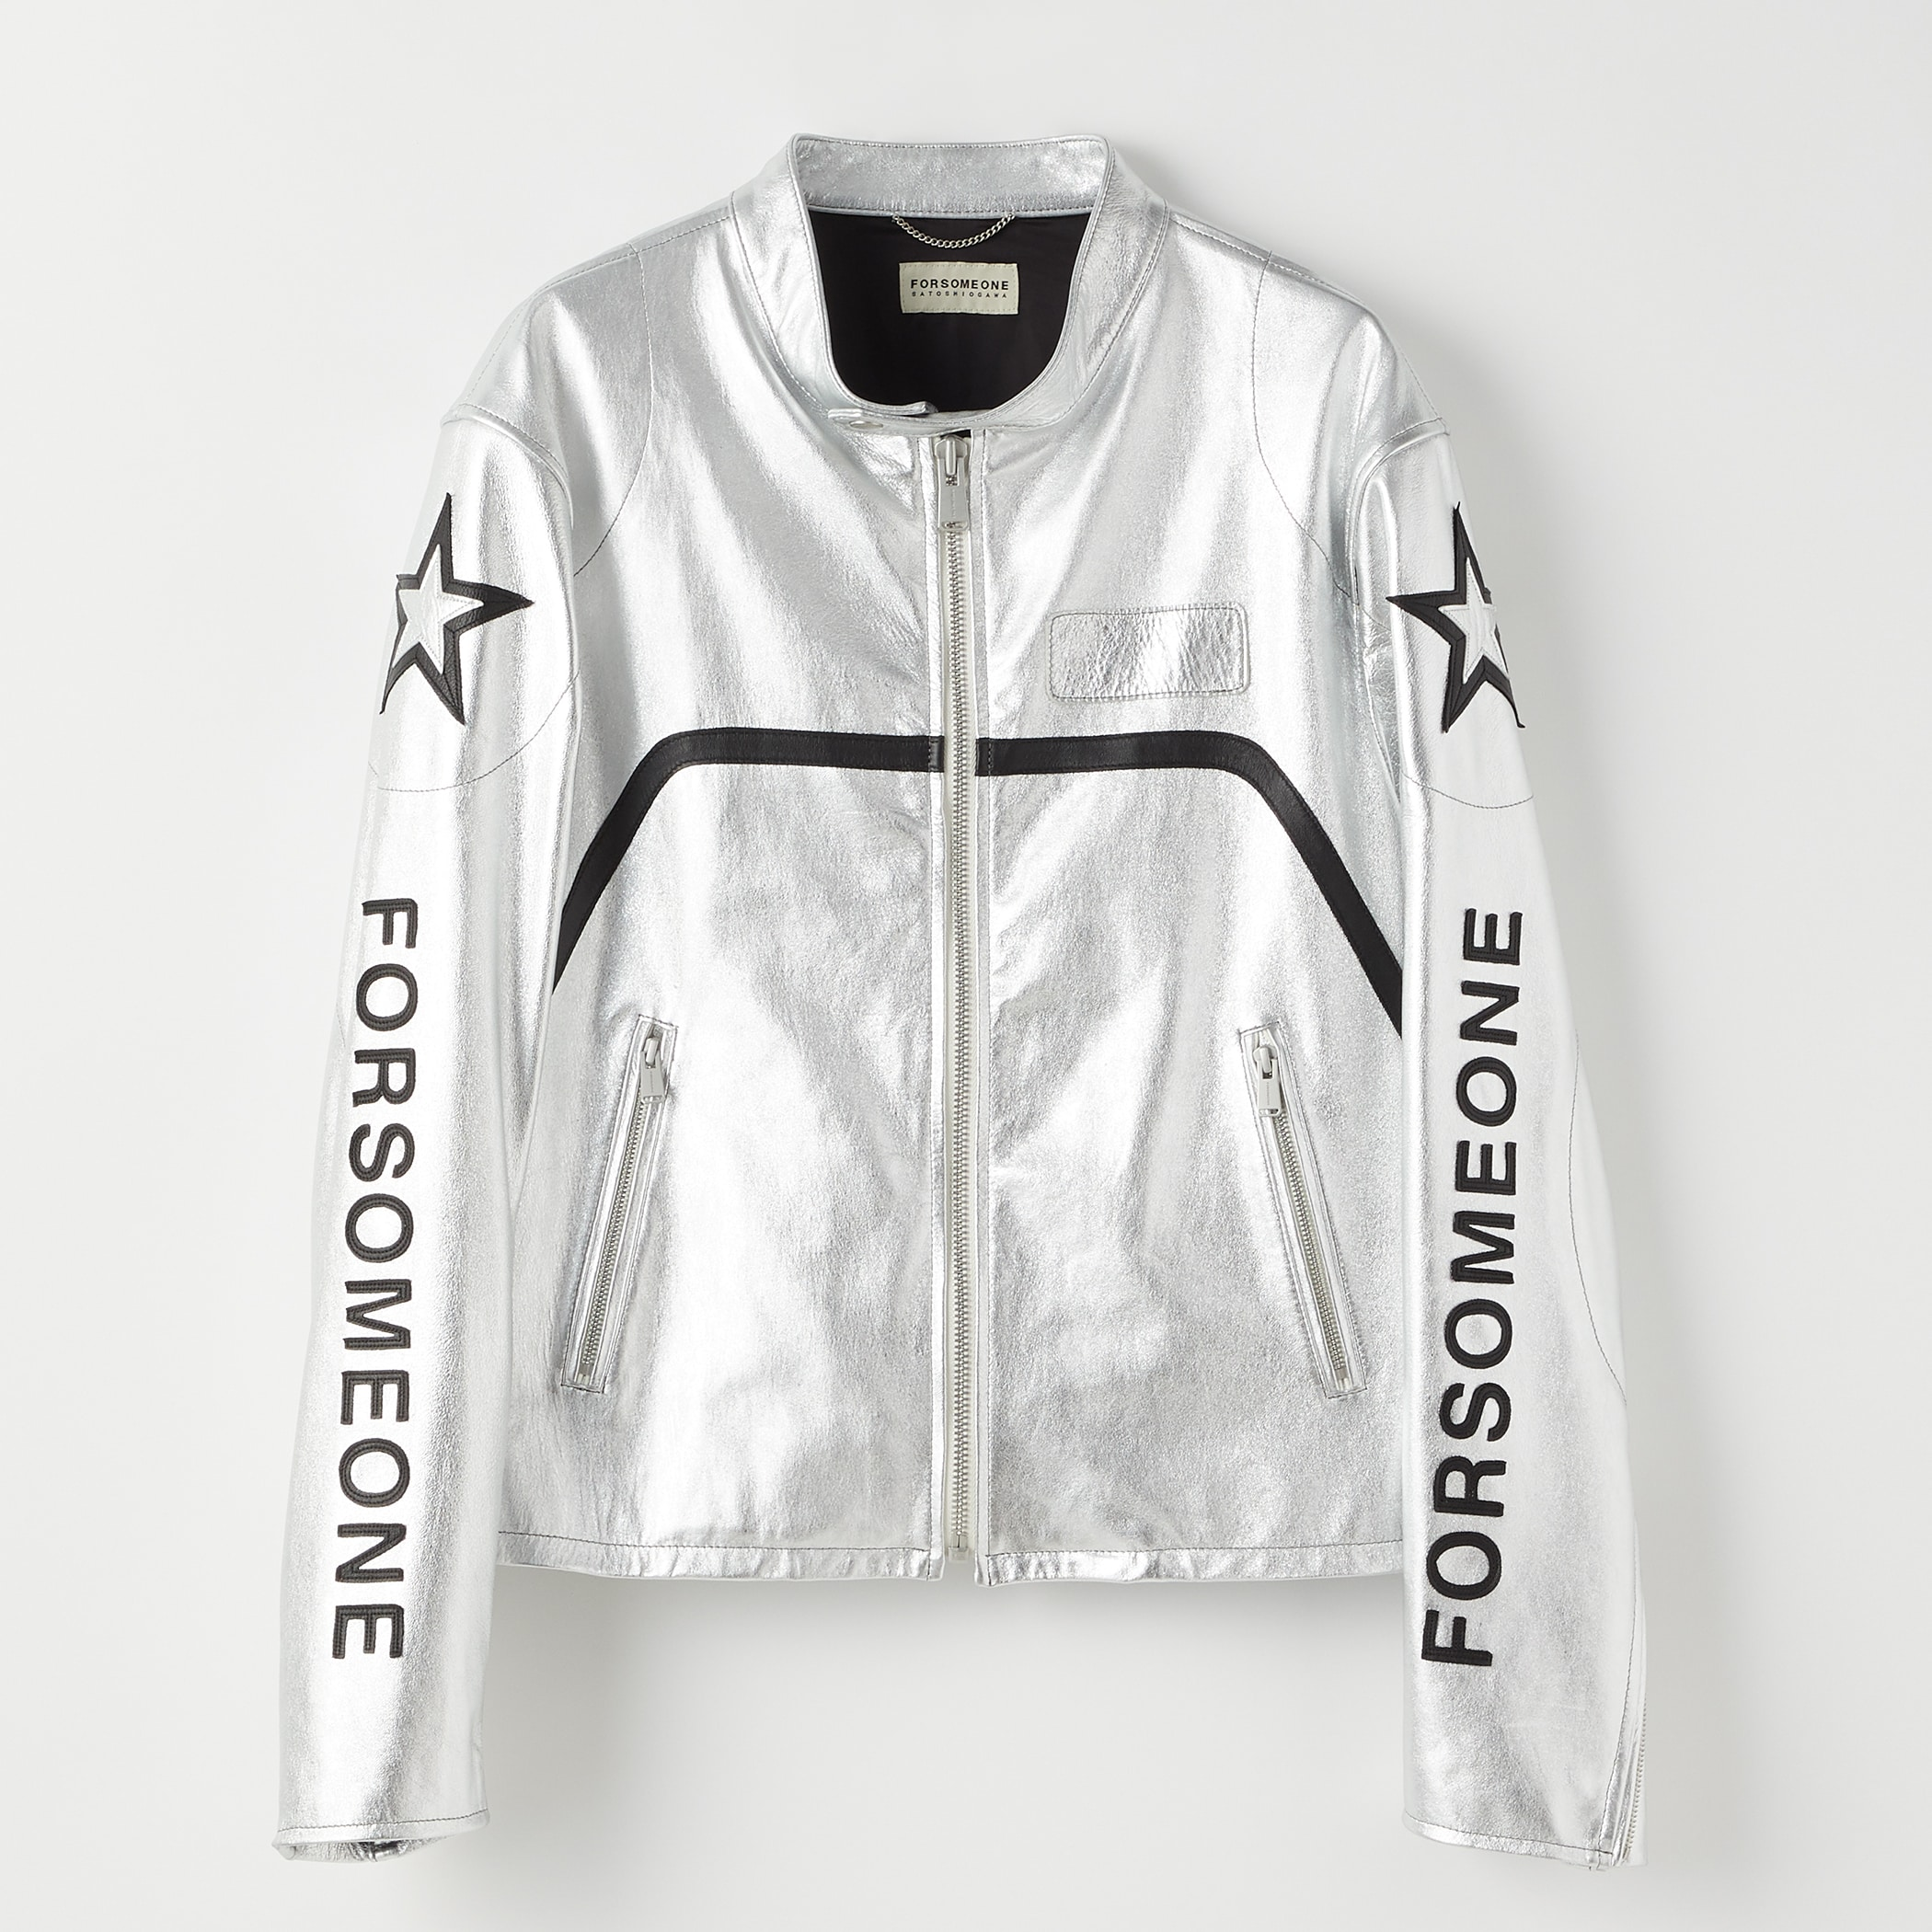 SIGNATURE RACING JACKET 詳細画像 Silver 1